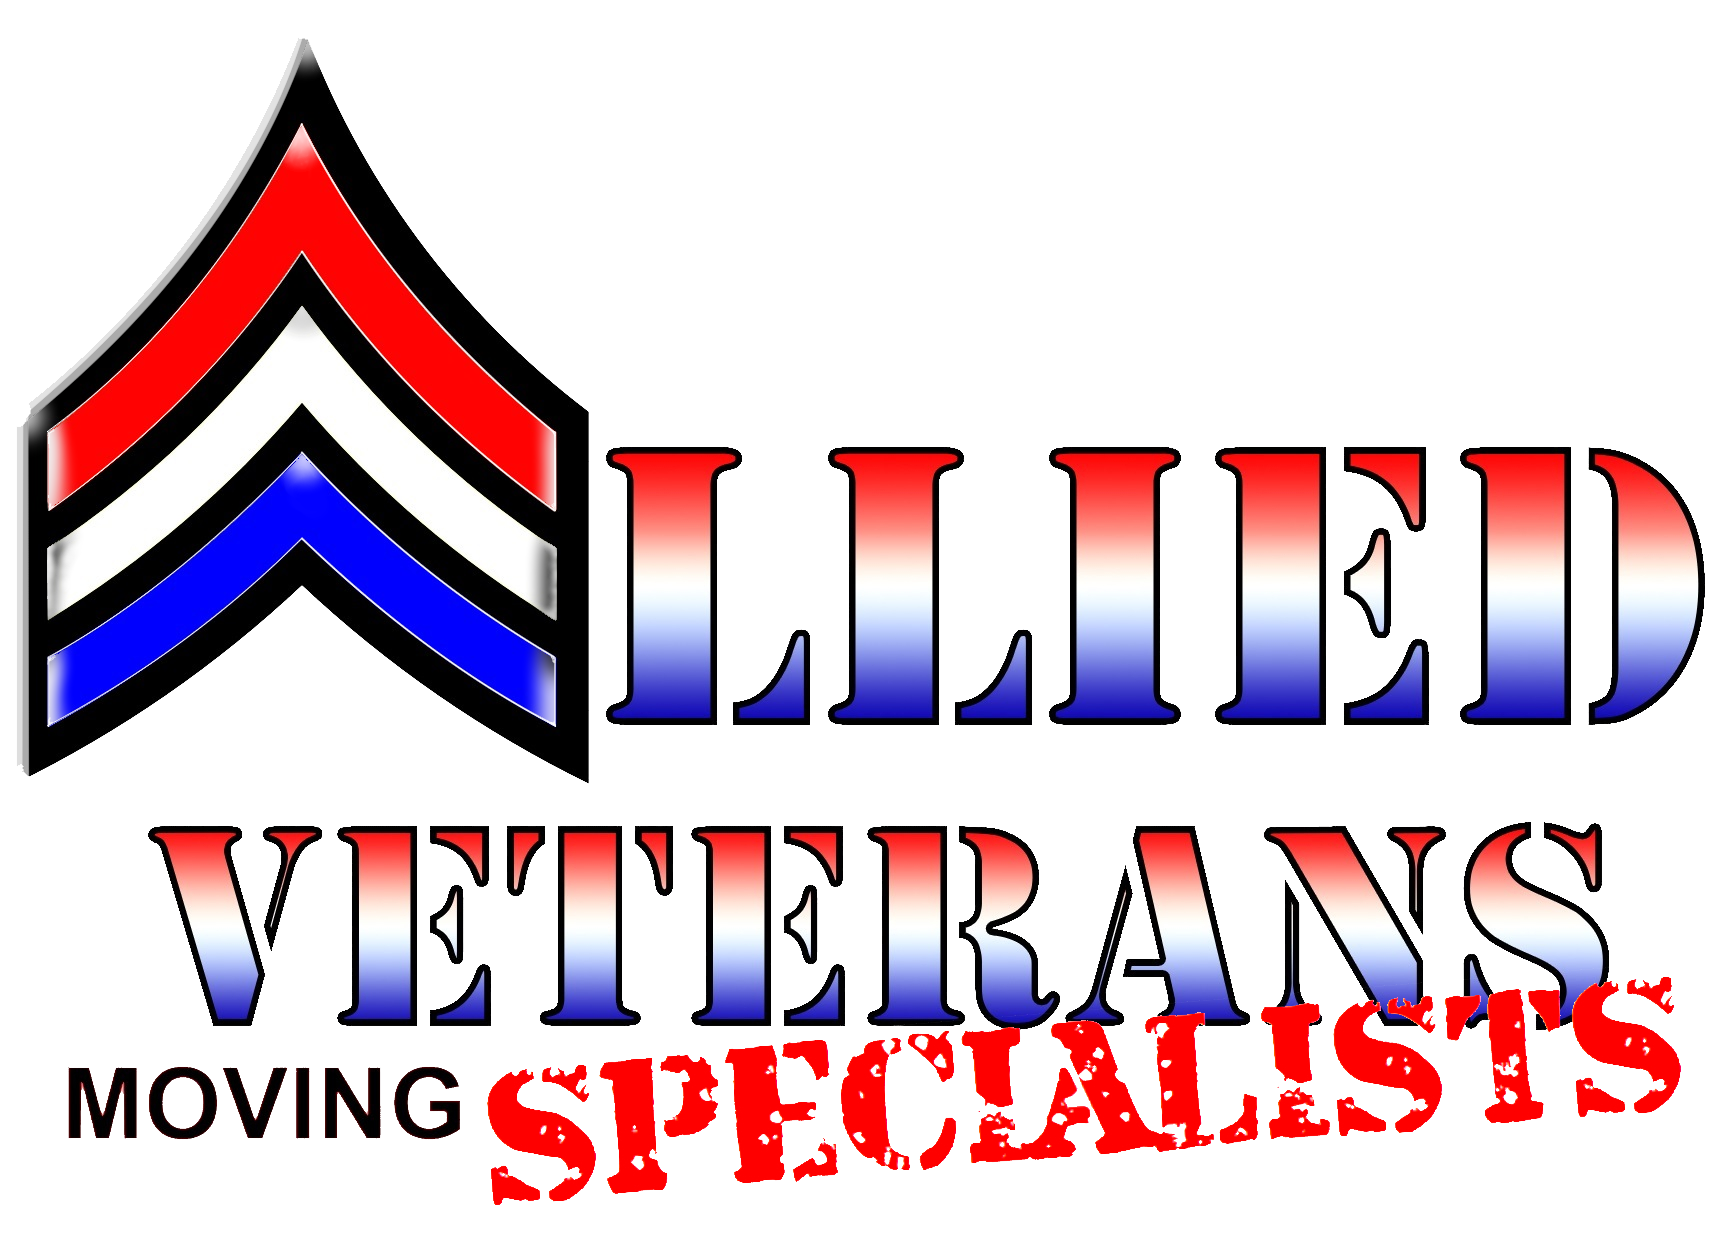 Allied Veterans Moving Specialists